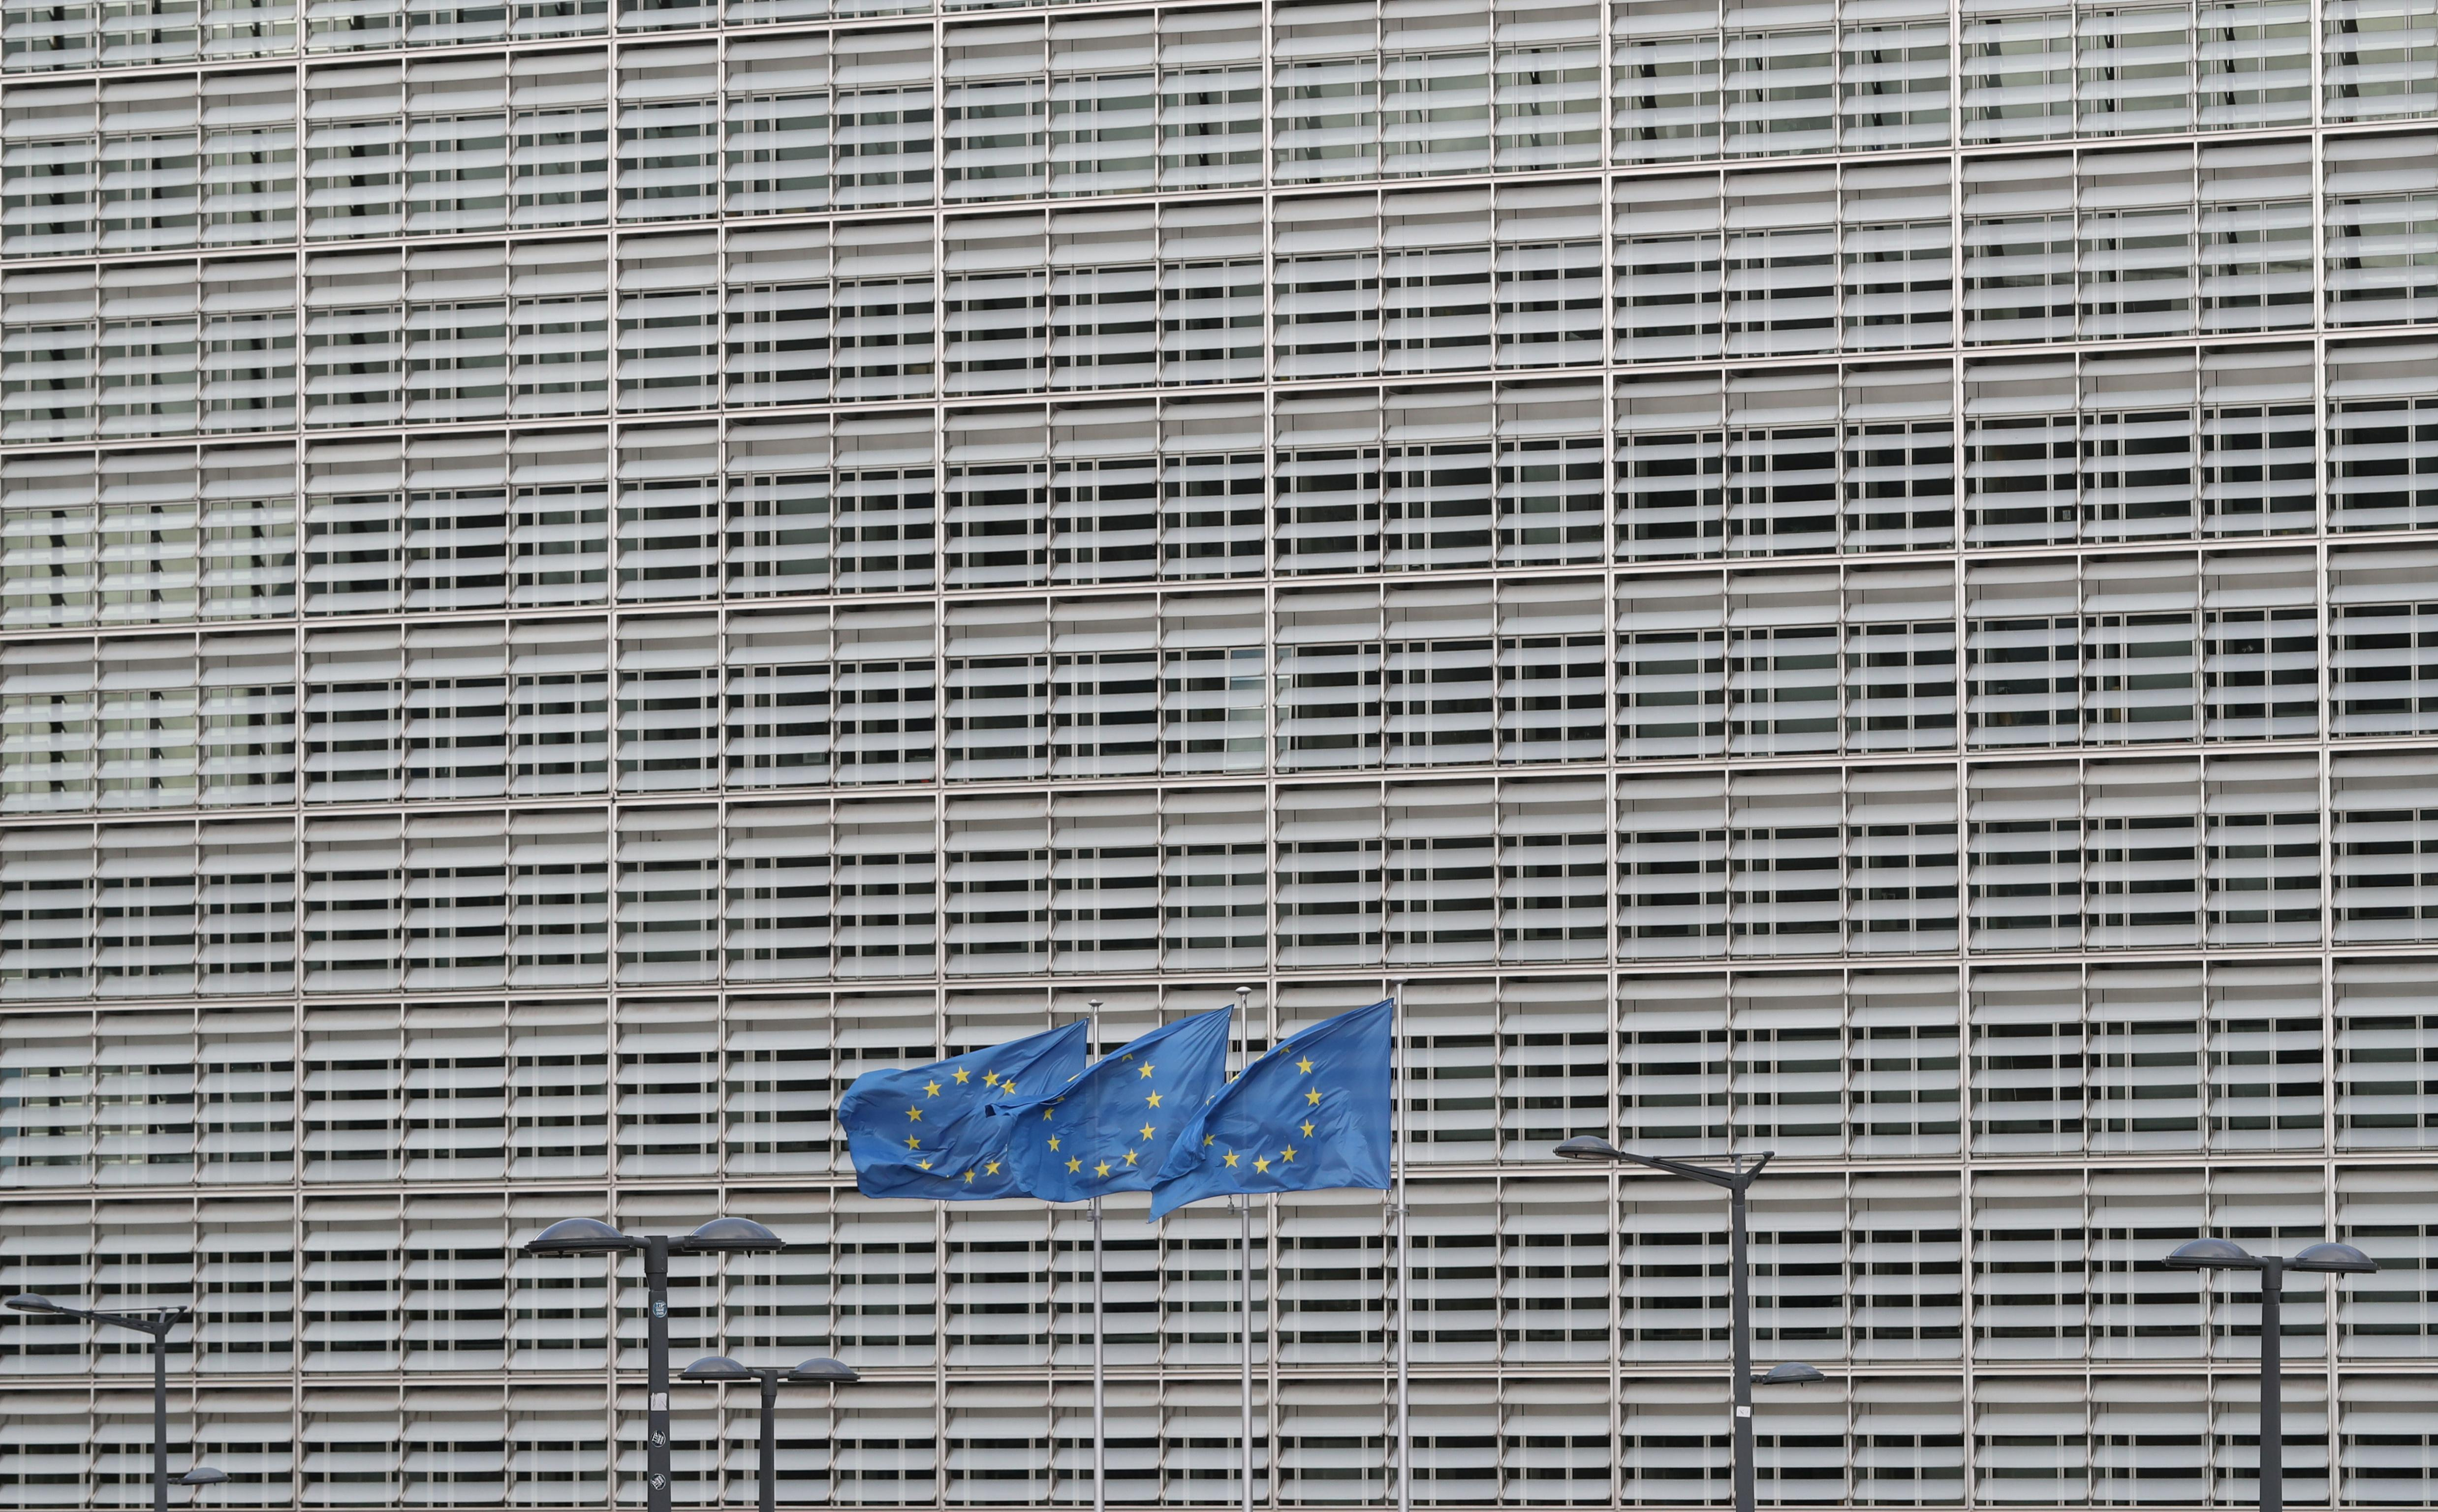 'Less action plans, more action': EU Commission under fire over...